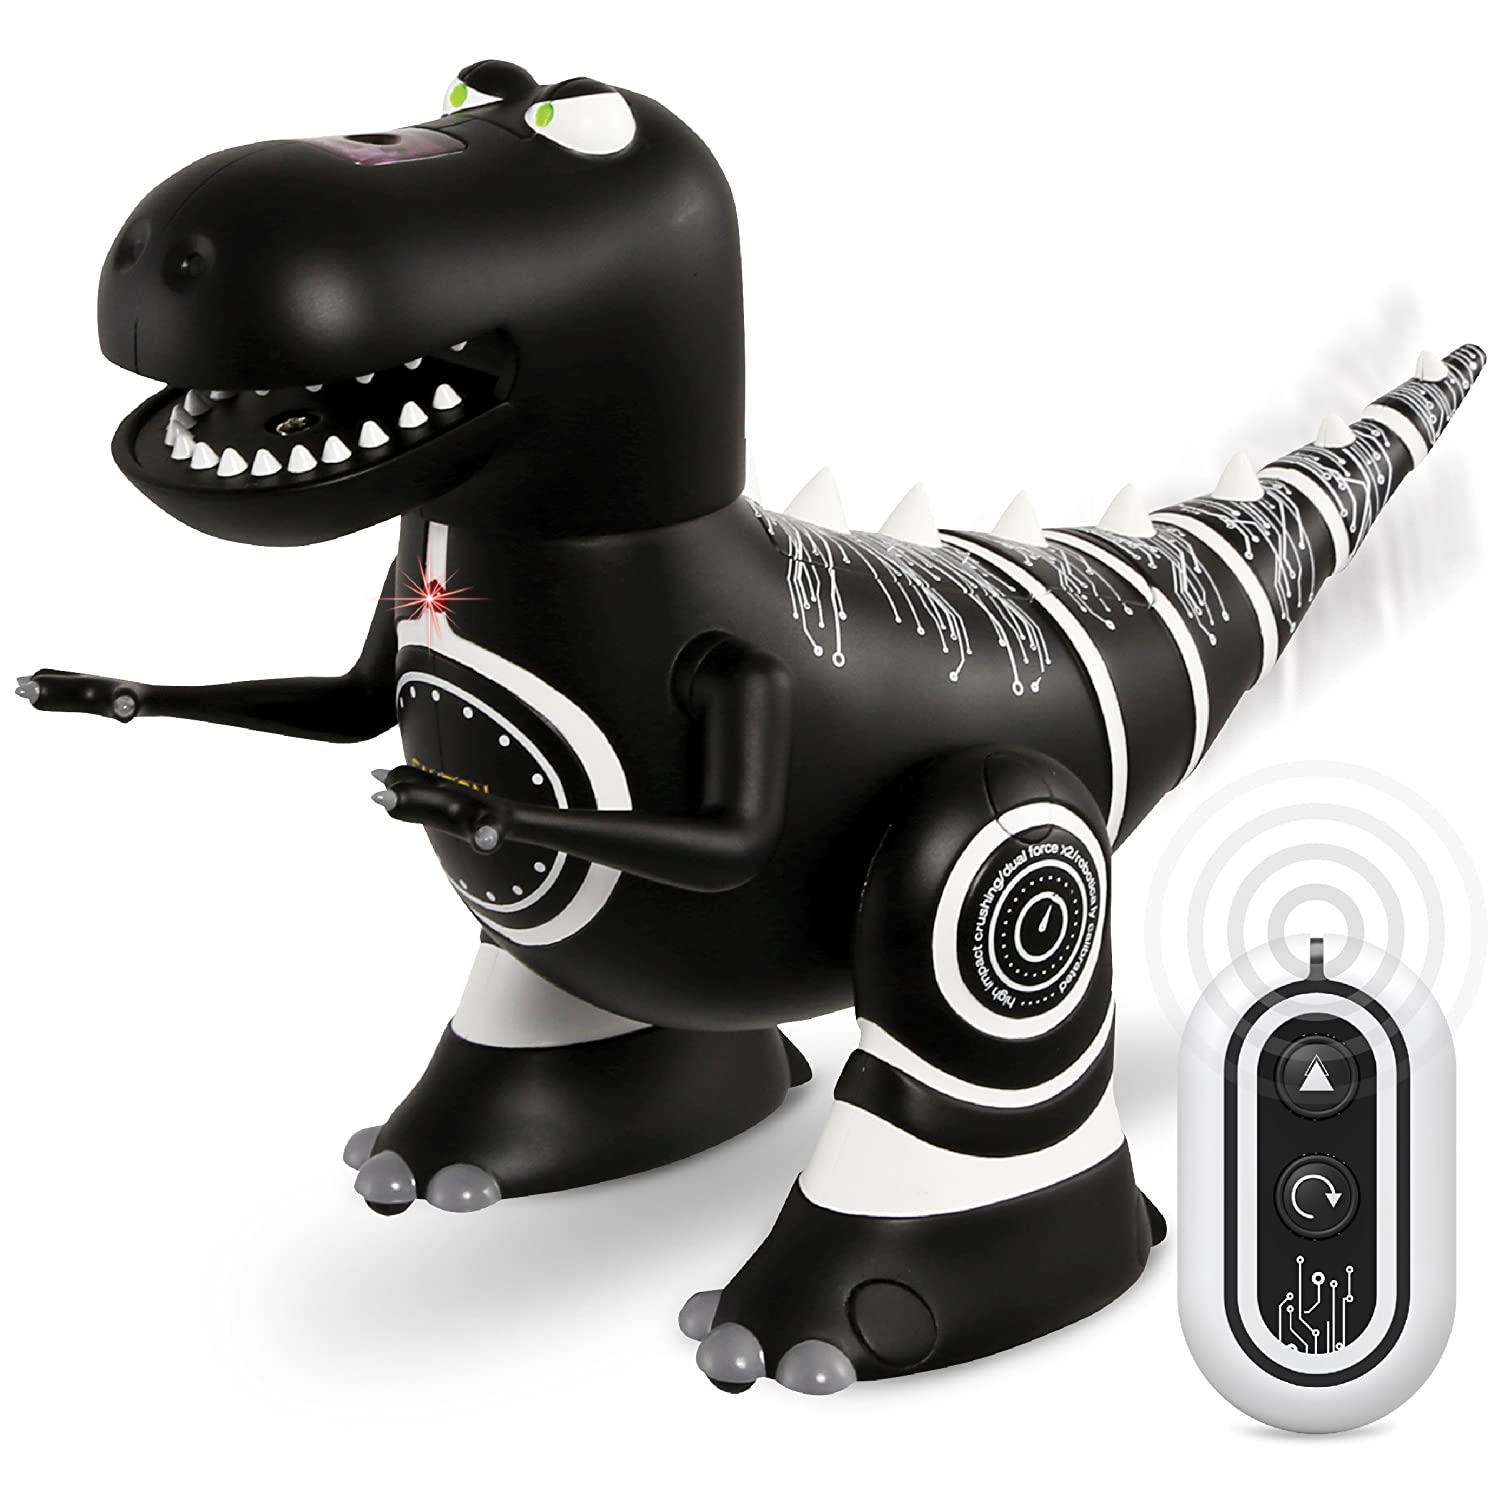 Sharper Image Remote Control Mini RC Robotosaur Dinosaur Toy for Kids Miniature Futuristic Sci Fi Robot T Rex Moving Action Figure with Infrared Technology Battery Operated – Black Body